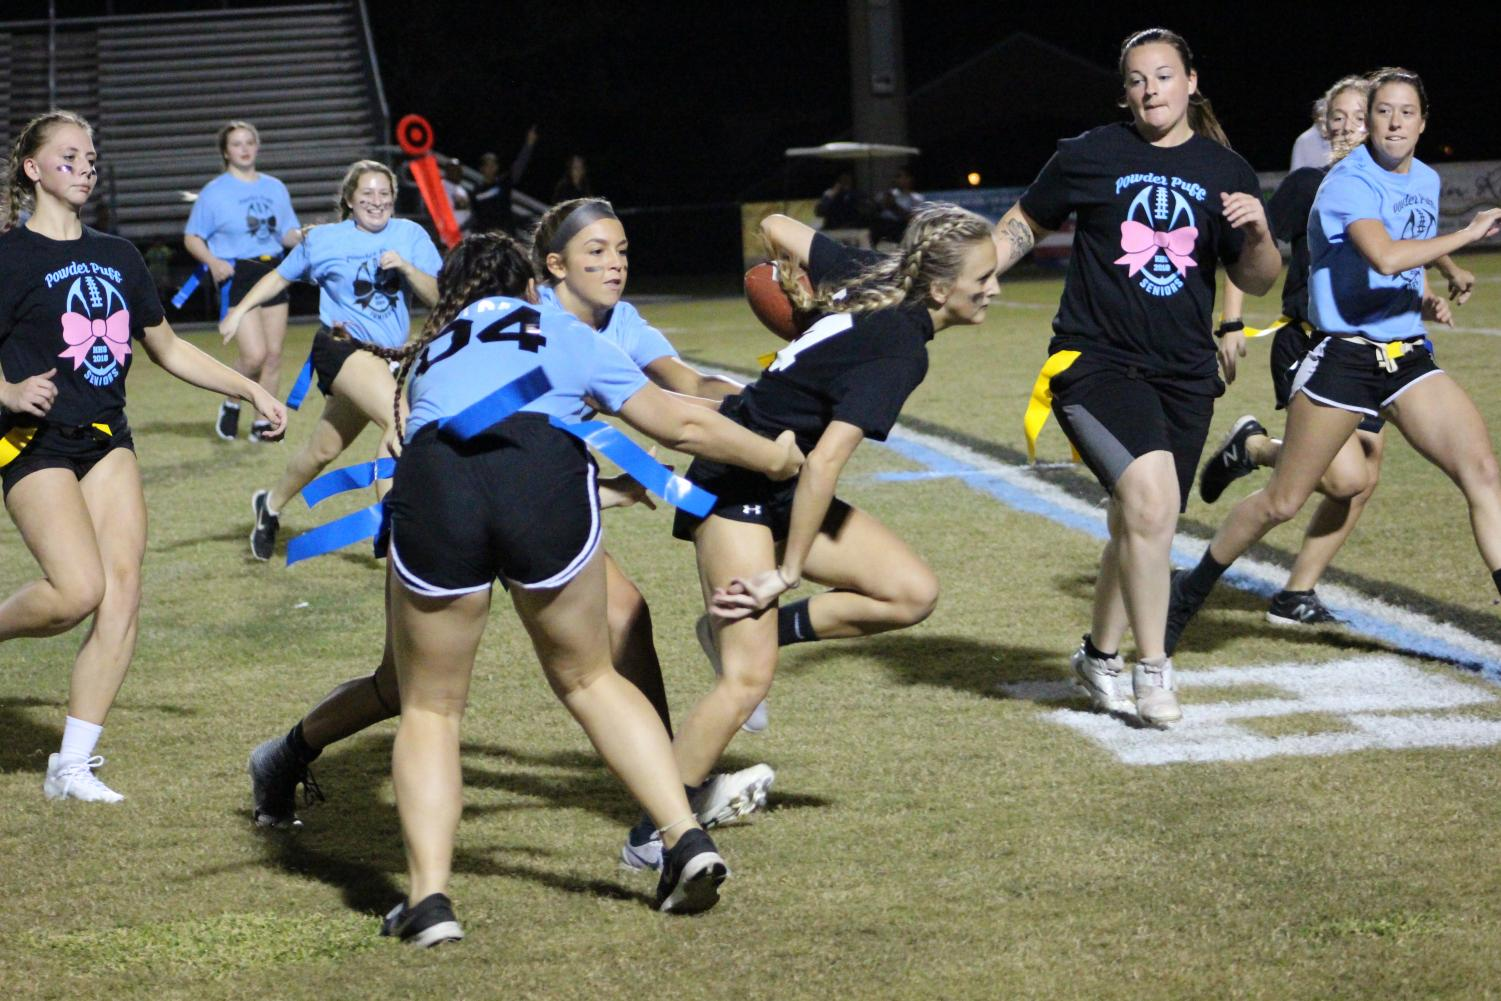 Senior Rachel Robbins fights through the crowd. She scored two touchdowns during the game.